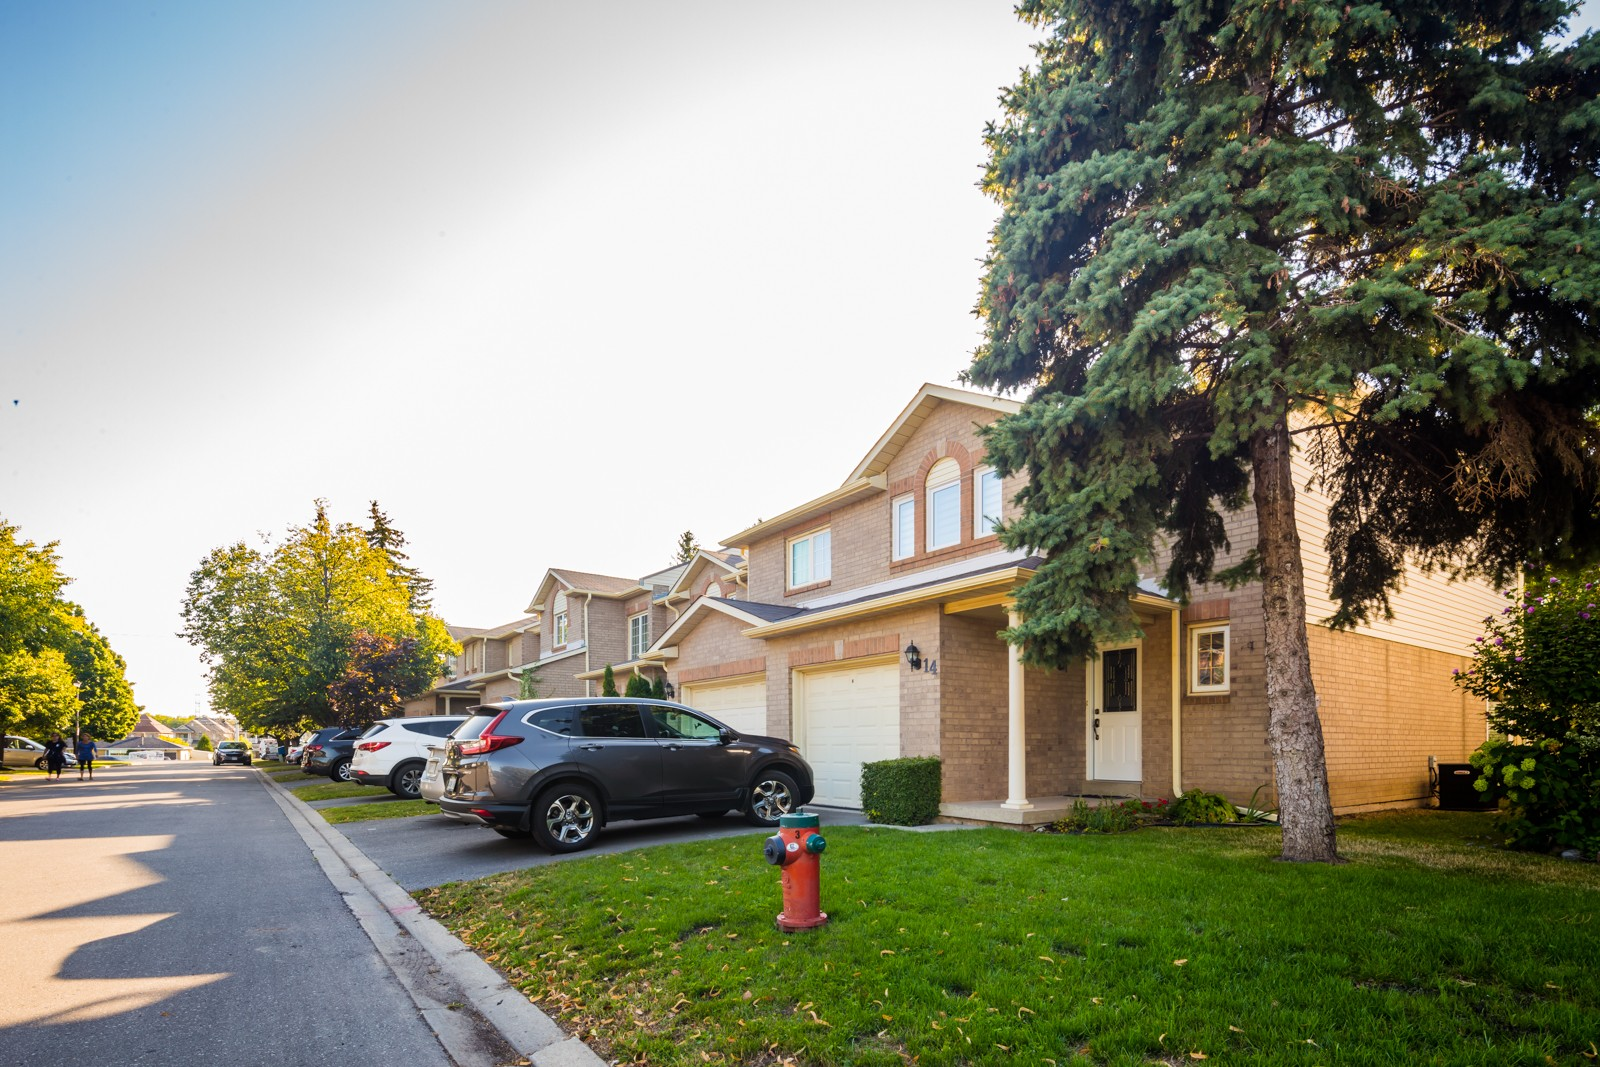 38 Chipstead Avenue Townhouses at 8 Chipstead Ave, Brampton 1